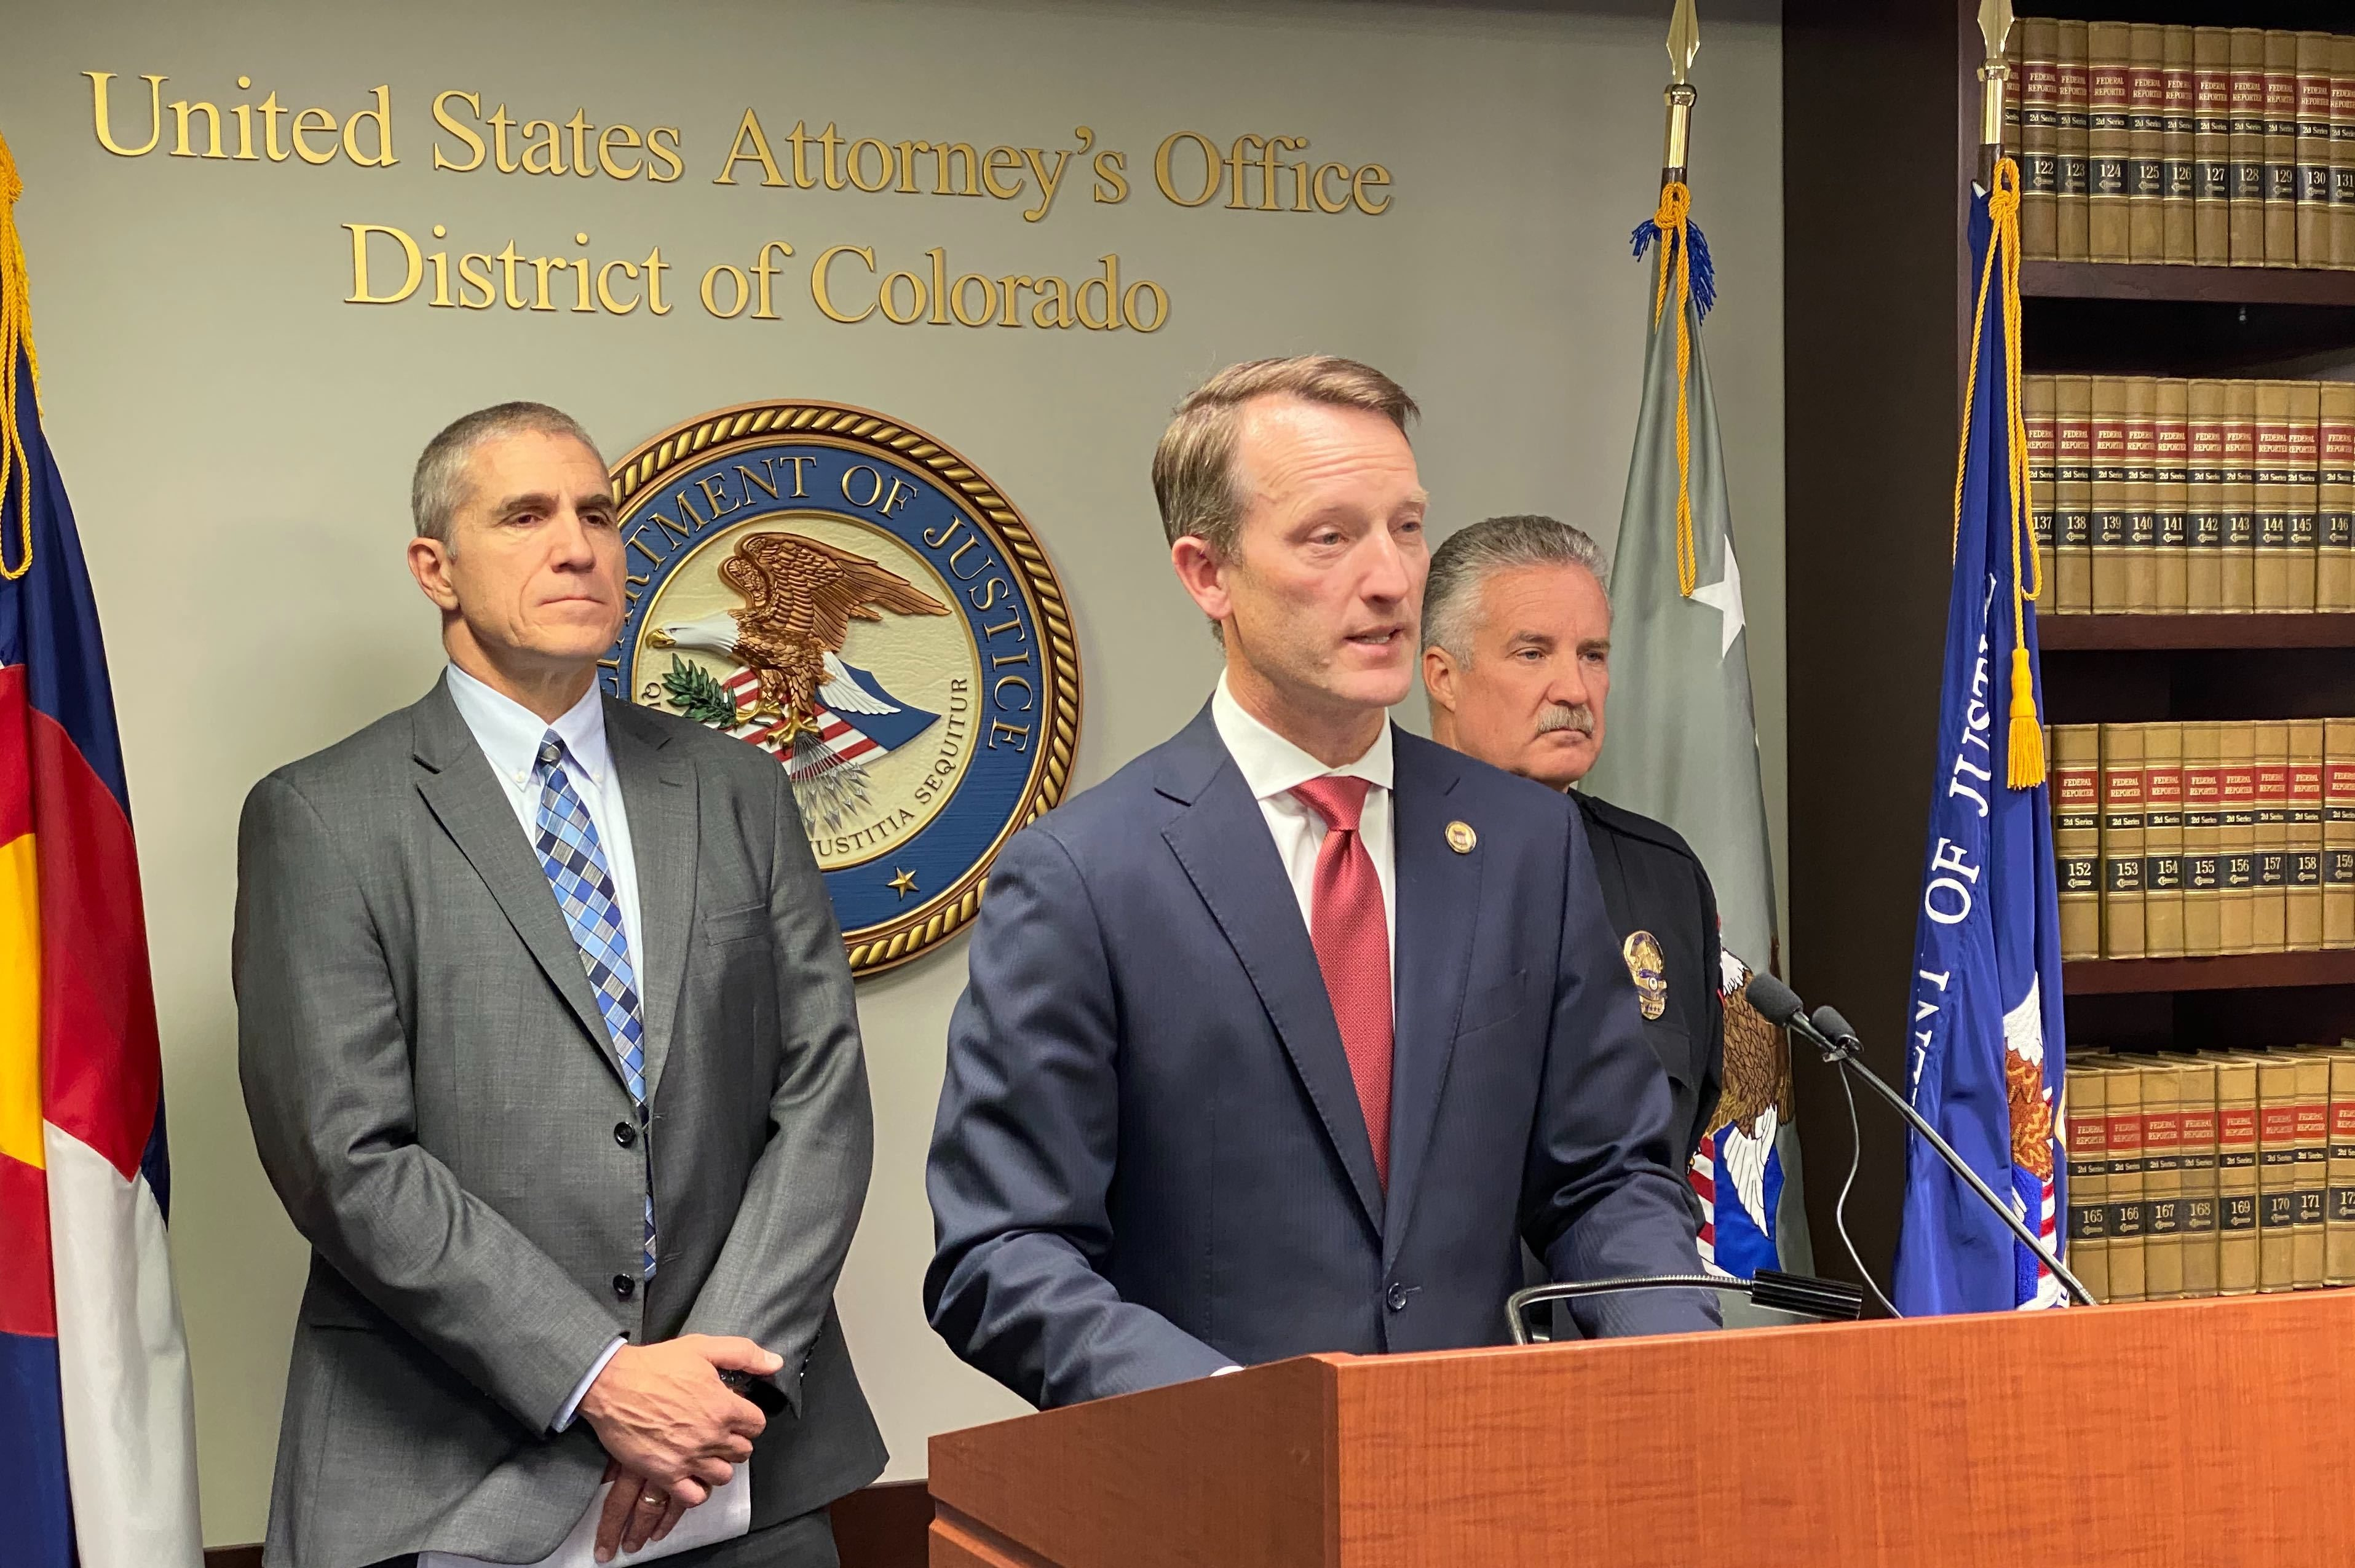 U.S. Attorney Jason R. Dunn, flanked by Special Agent in Charge Dean Phillips for the FBI Denver Division, left, and Pueblo Chief of Police Troy Davenport announce the arrest in a plot to bomb Temple Emanuel Synagogue in Pueblo, Colo., Nov. 4, 2019.